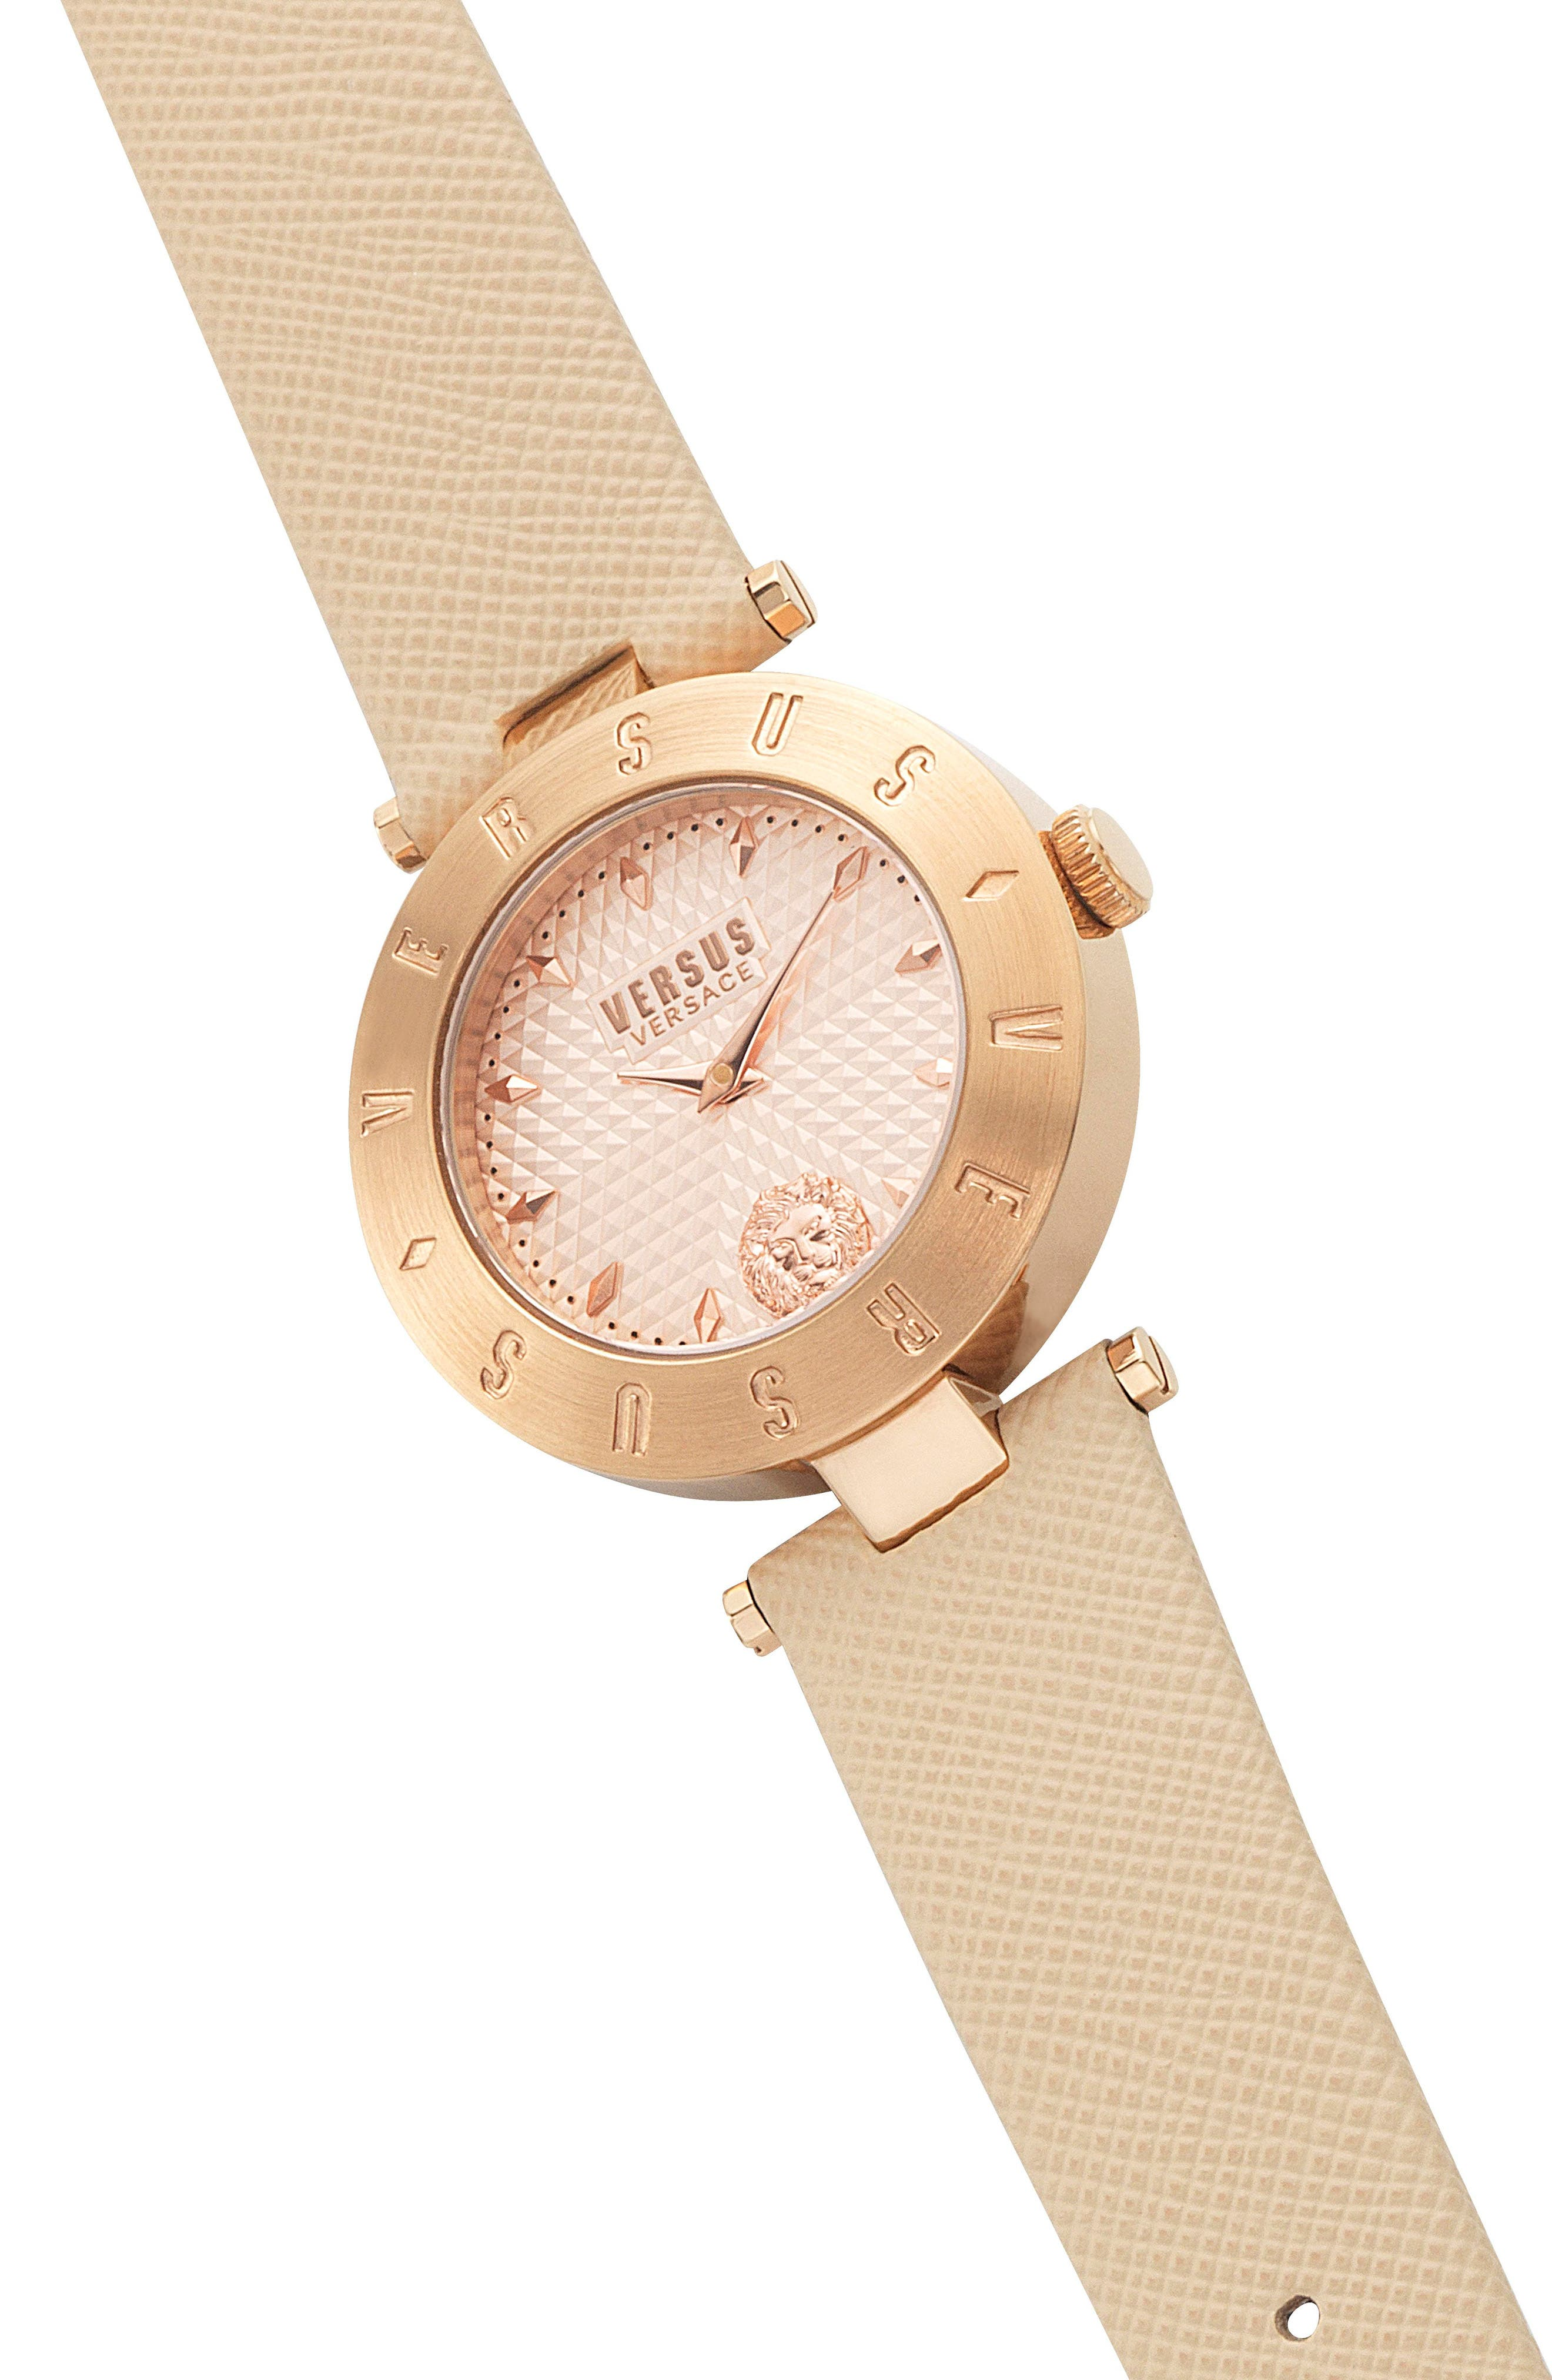 Versus by Versace New Logo Leather Strap Watch, 34mm,                             Alternate thumbnail 3, color,                             Beige/ Rose Gold